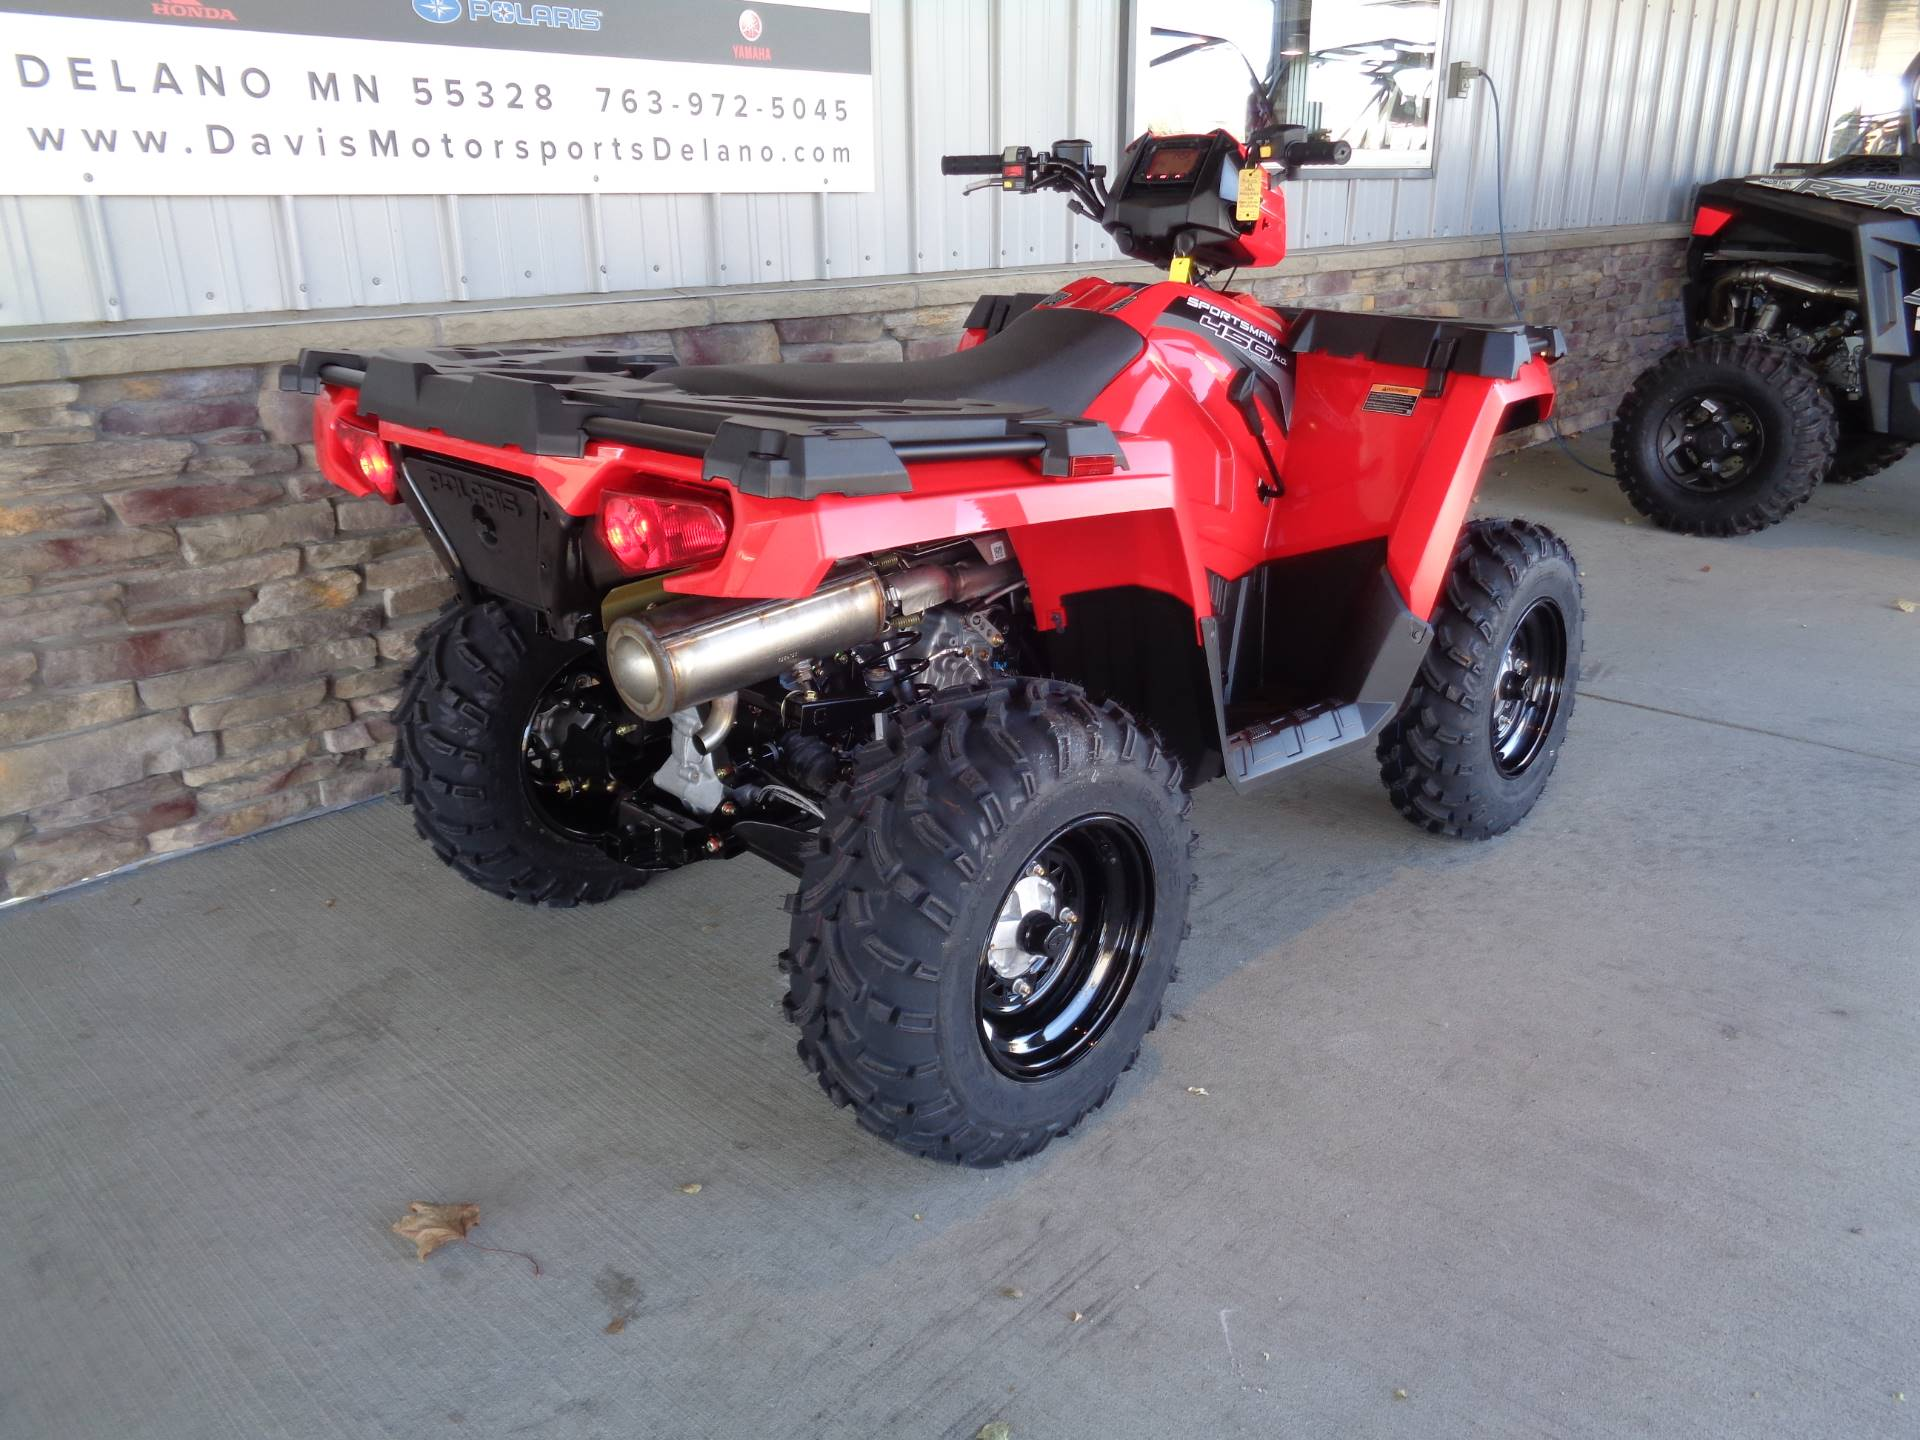 2019 Polaris Sportsman 450 H.O. EPS in Delano, Minnesota - Photo 5